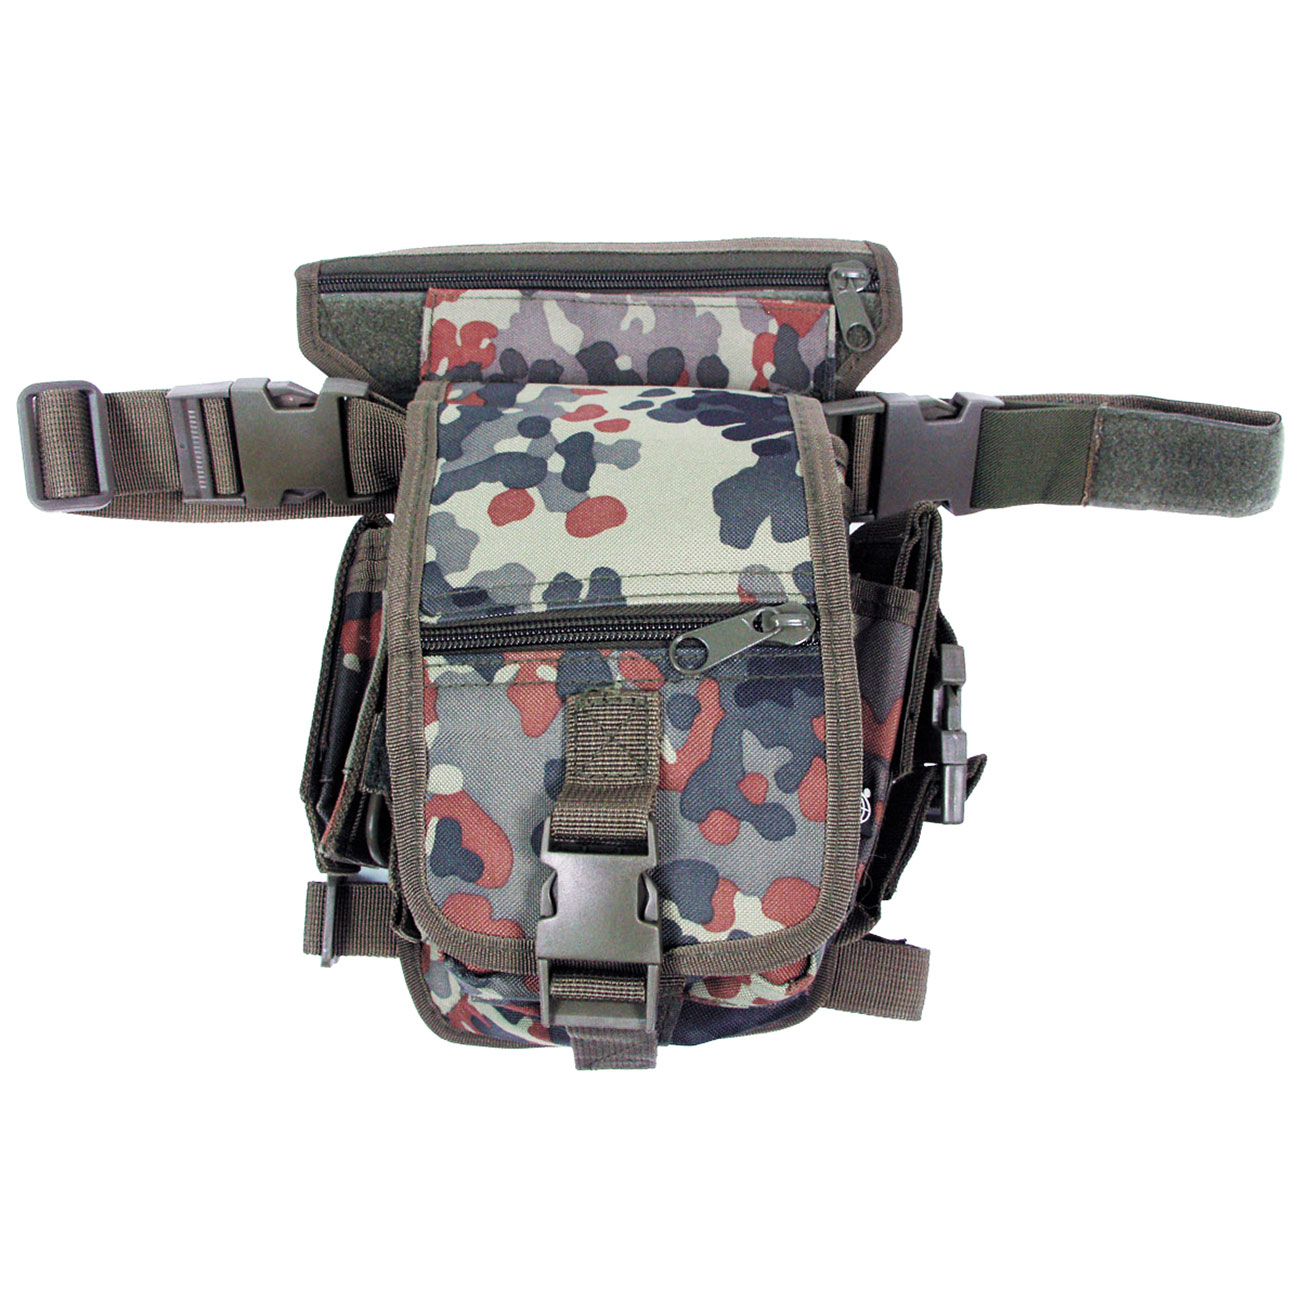 Hip Bag Security, flecktarn 0